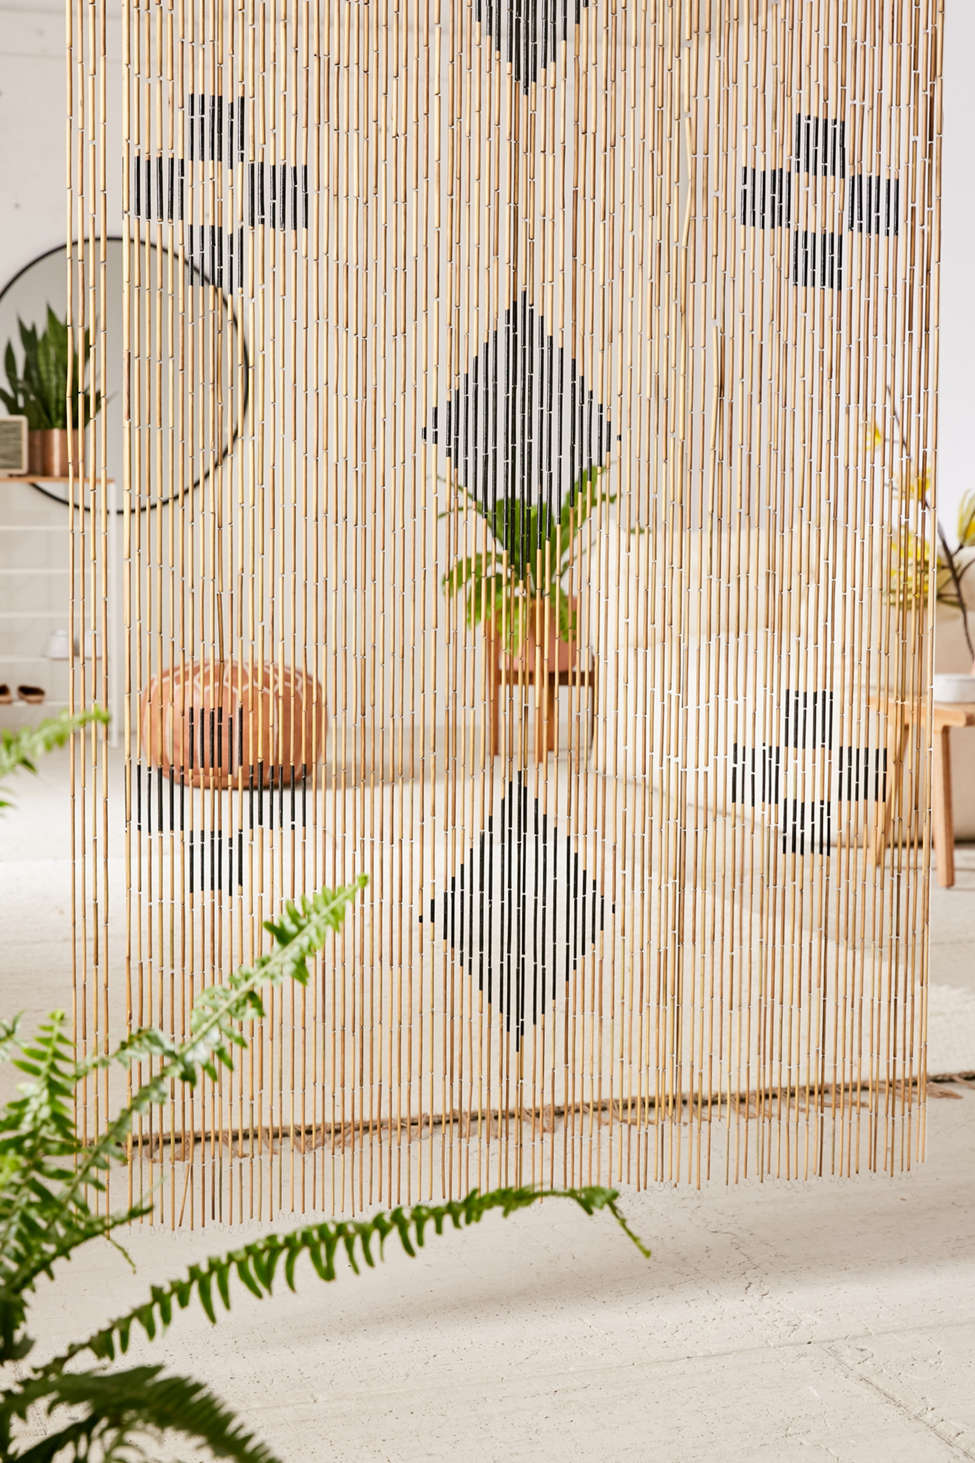 Slide View: 1: Marks Bamboo Beaded Curtain